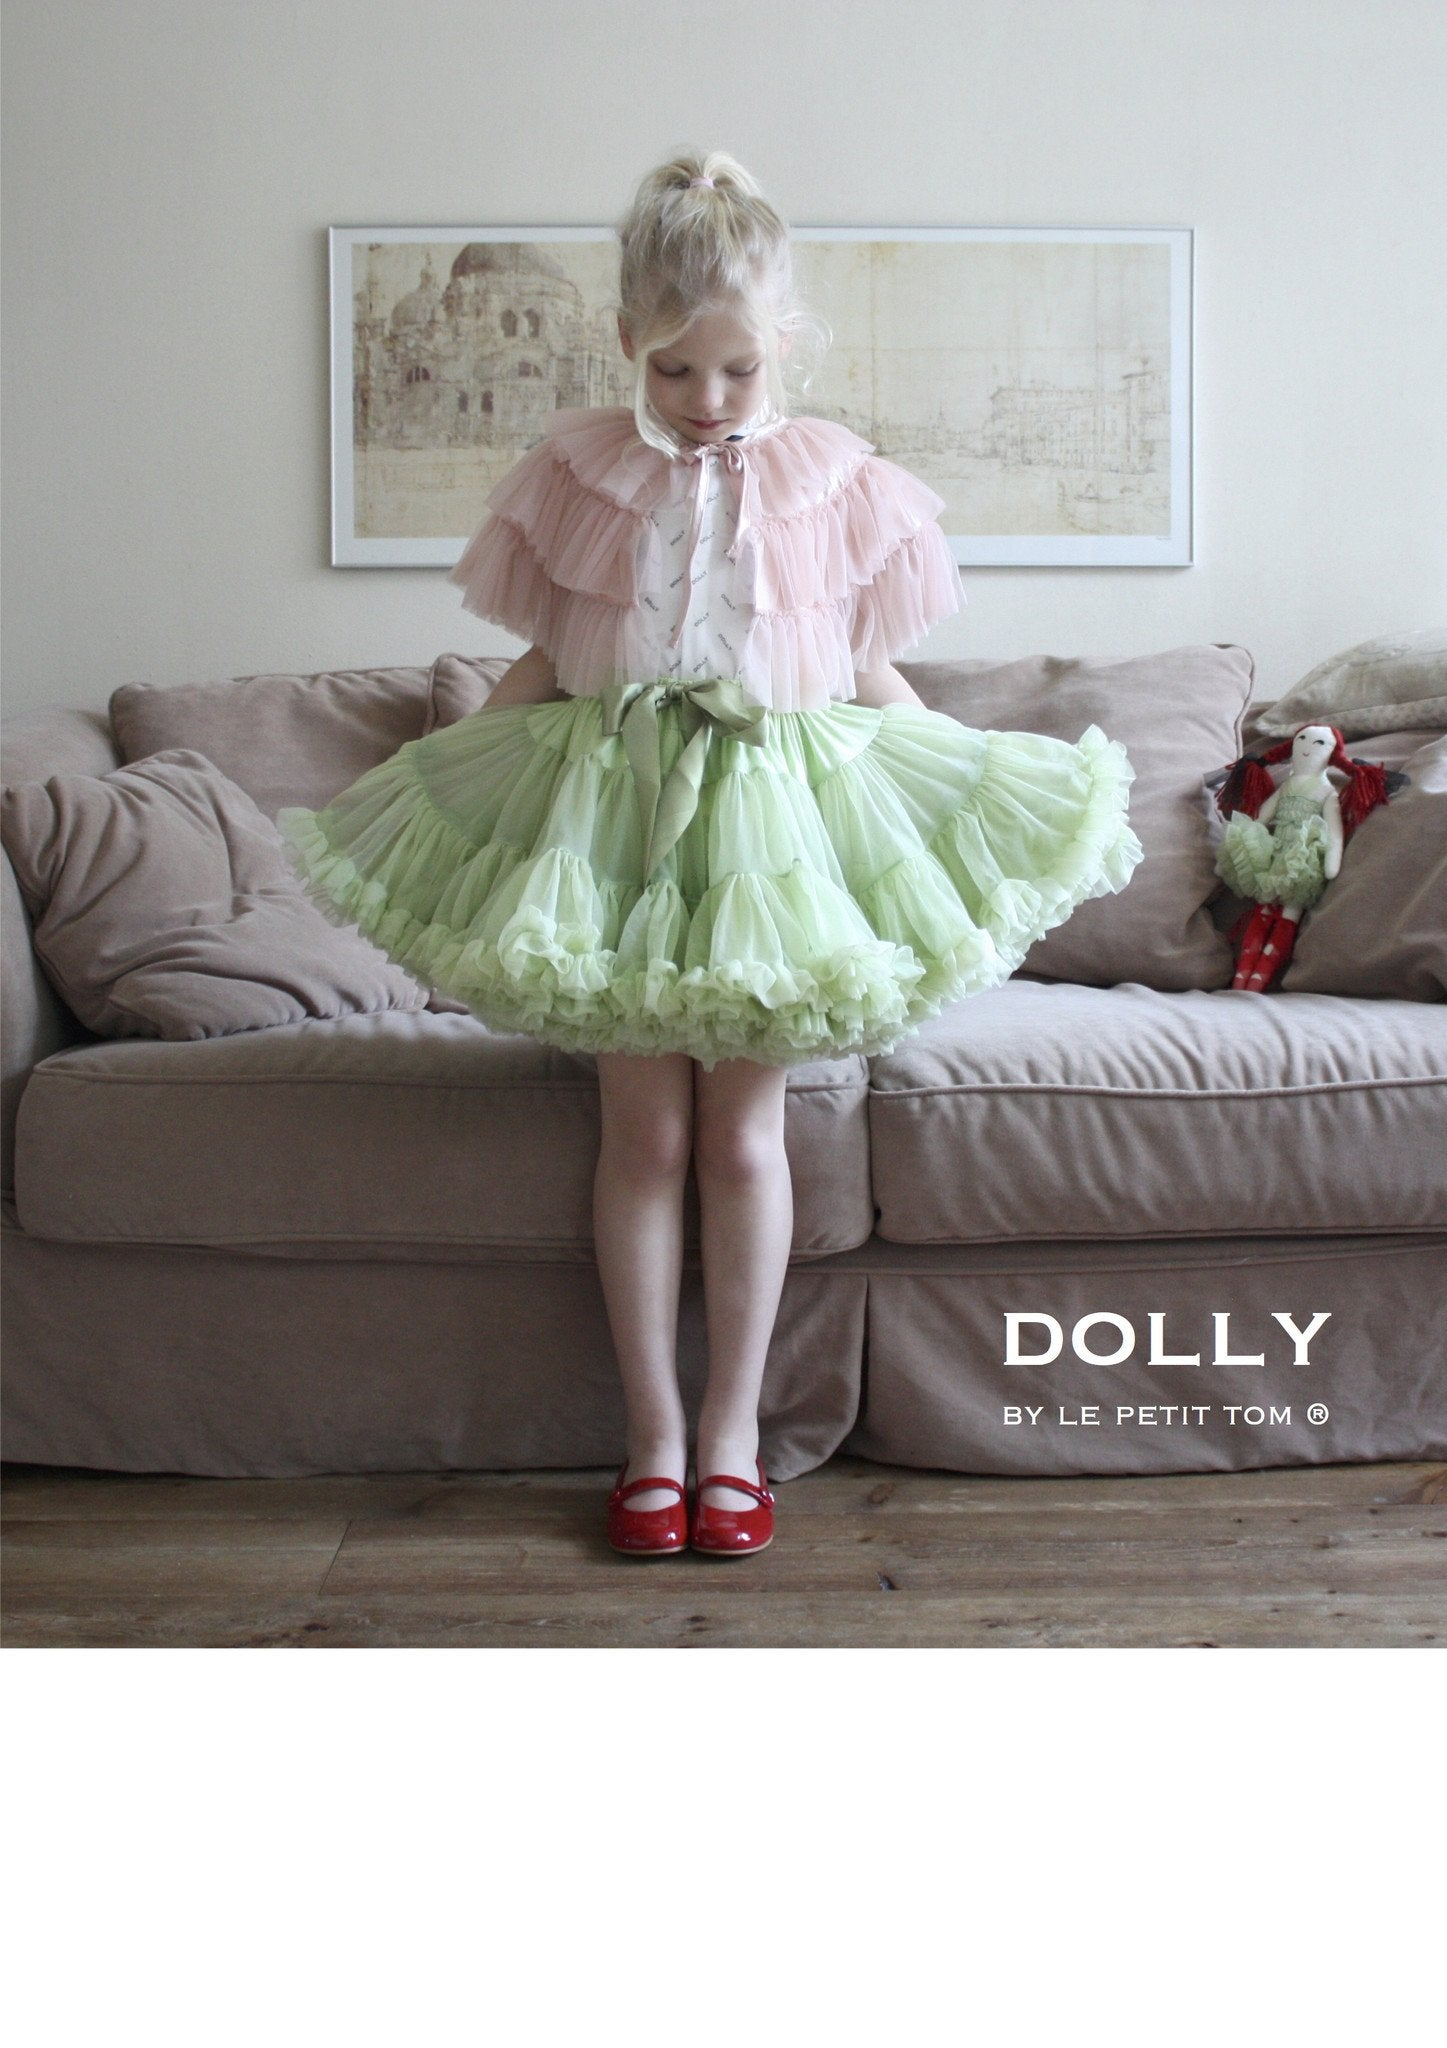 DOLLY by Le Petit Tom ® DRAGONFLY FAIRY DOLL light green - DOLLY by Le Petit Tom ®